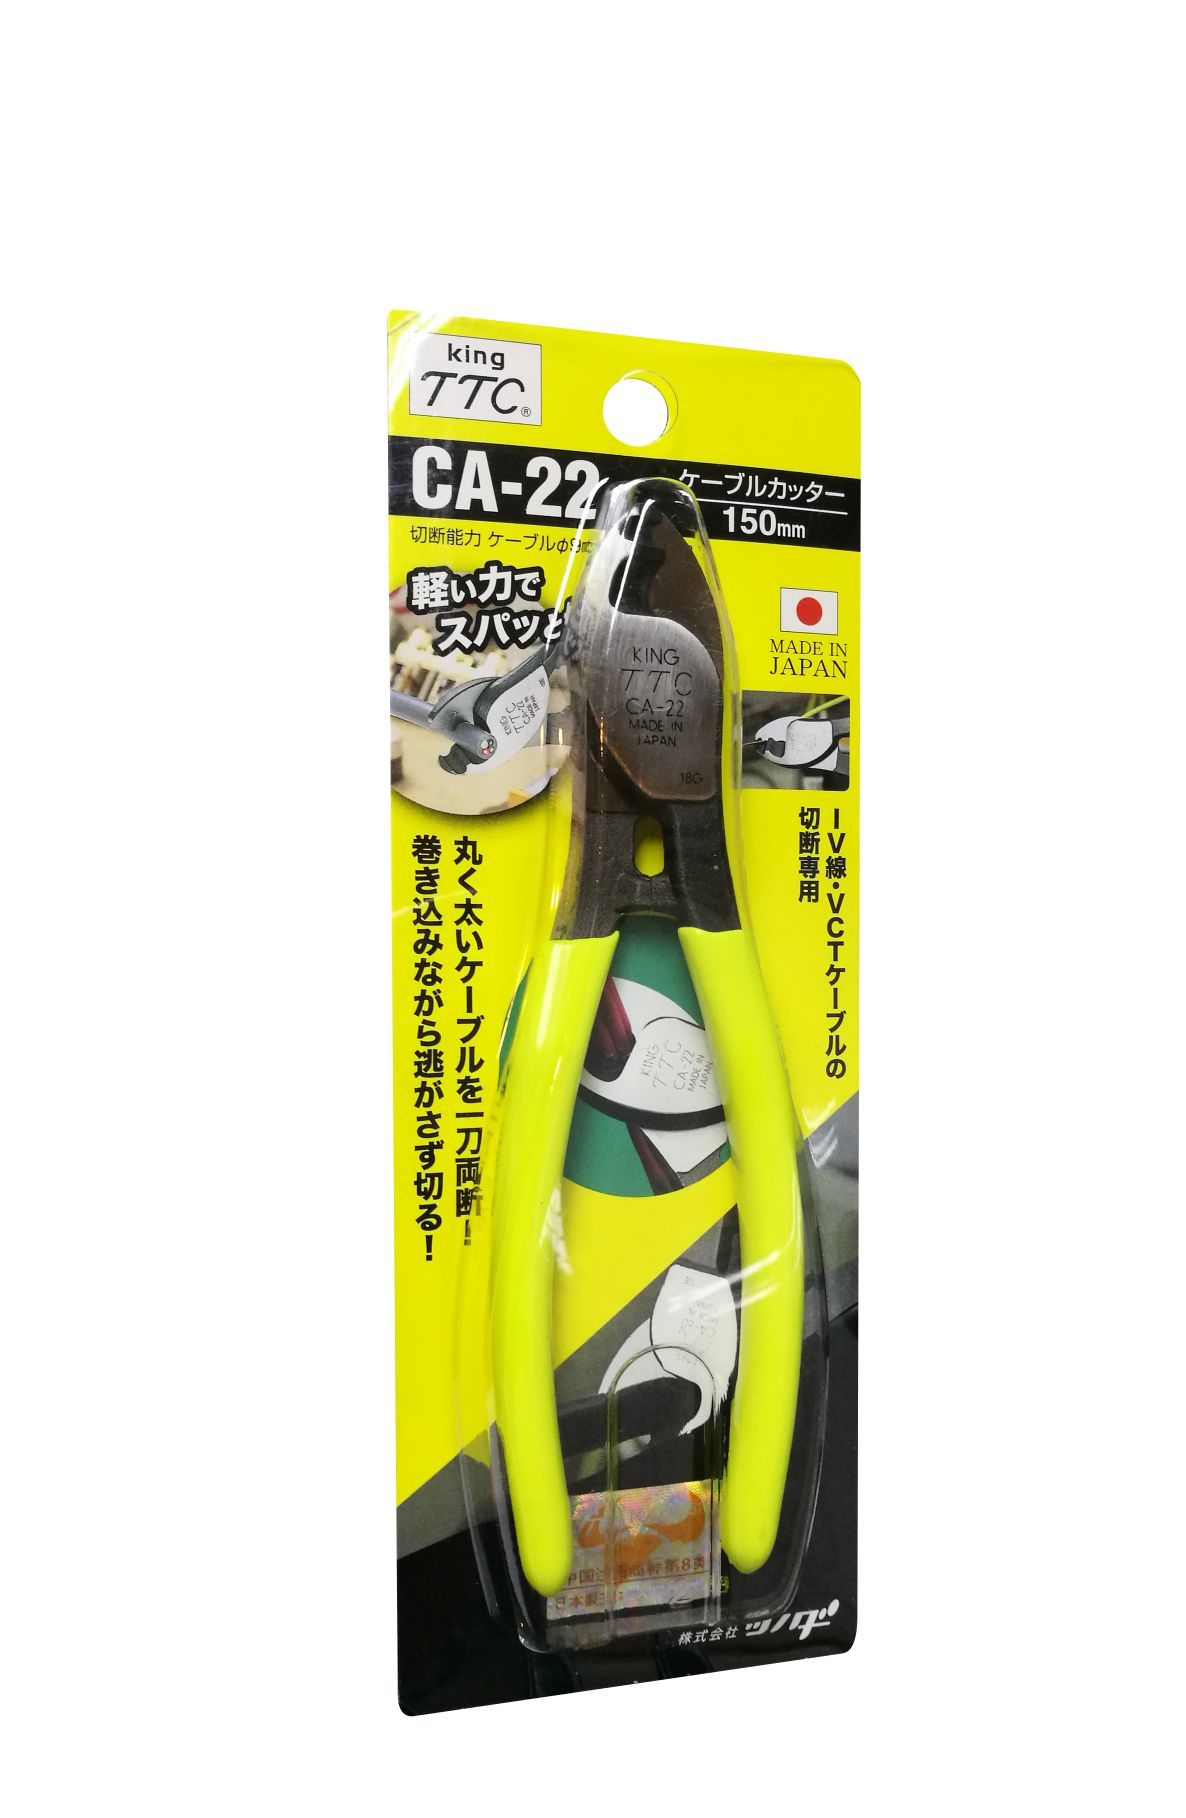 CABLE CUTTER.jpg